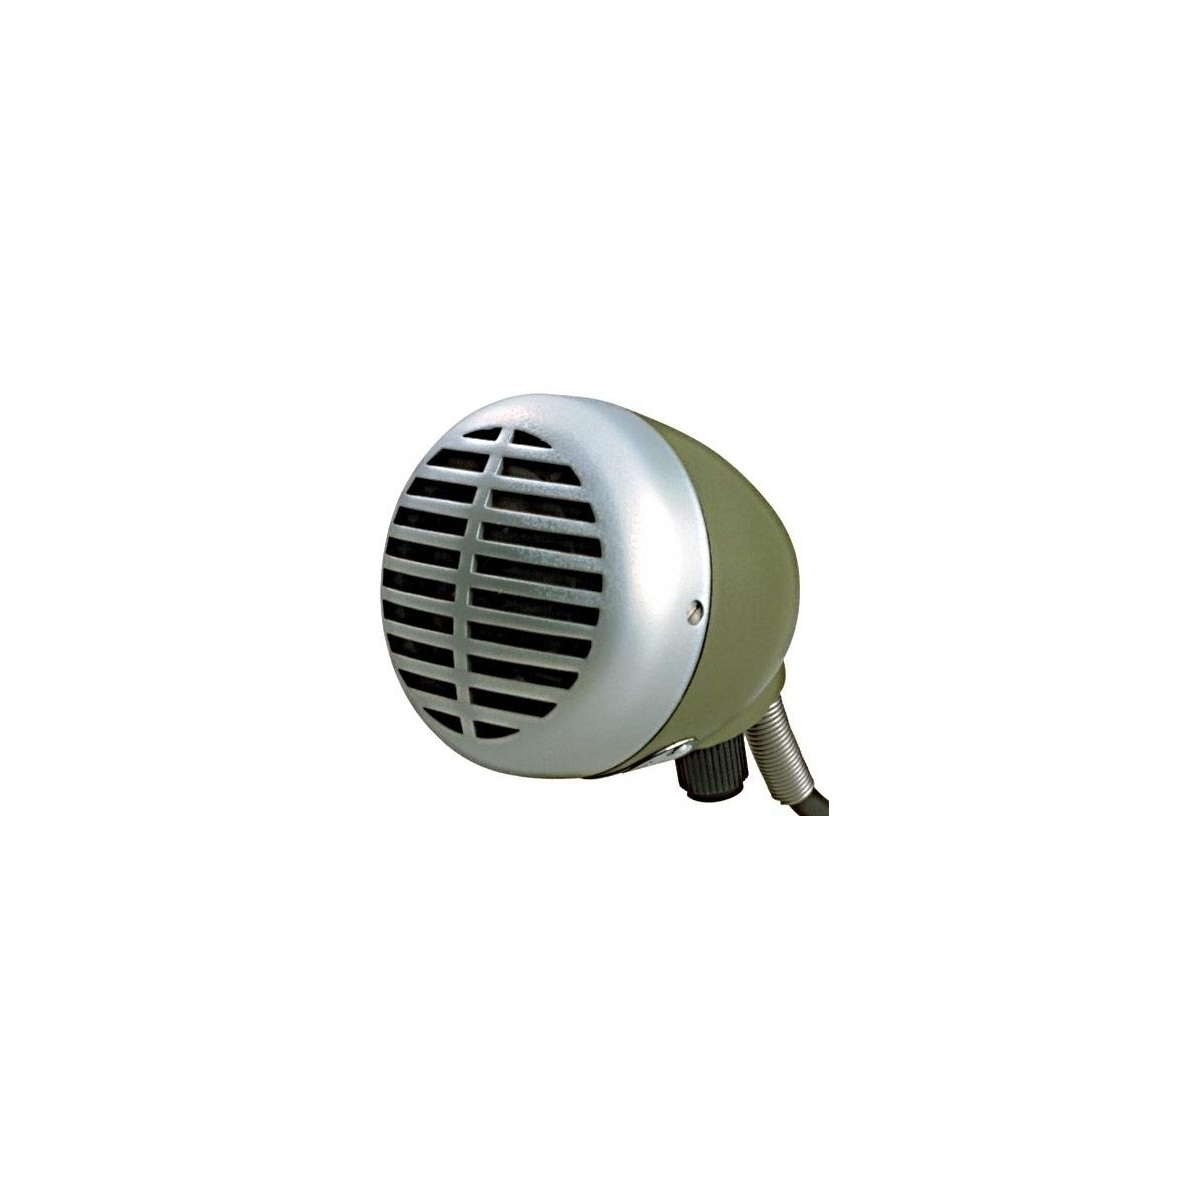 Micros instruments - Shure - 520 DX